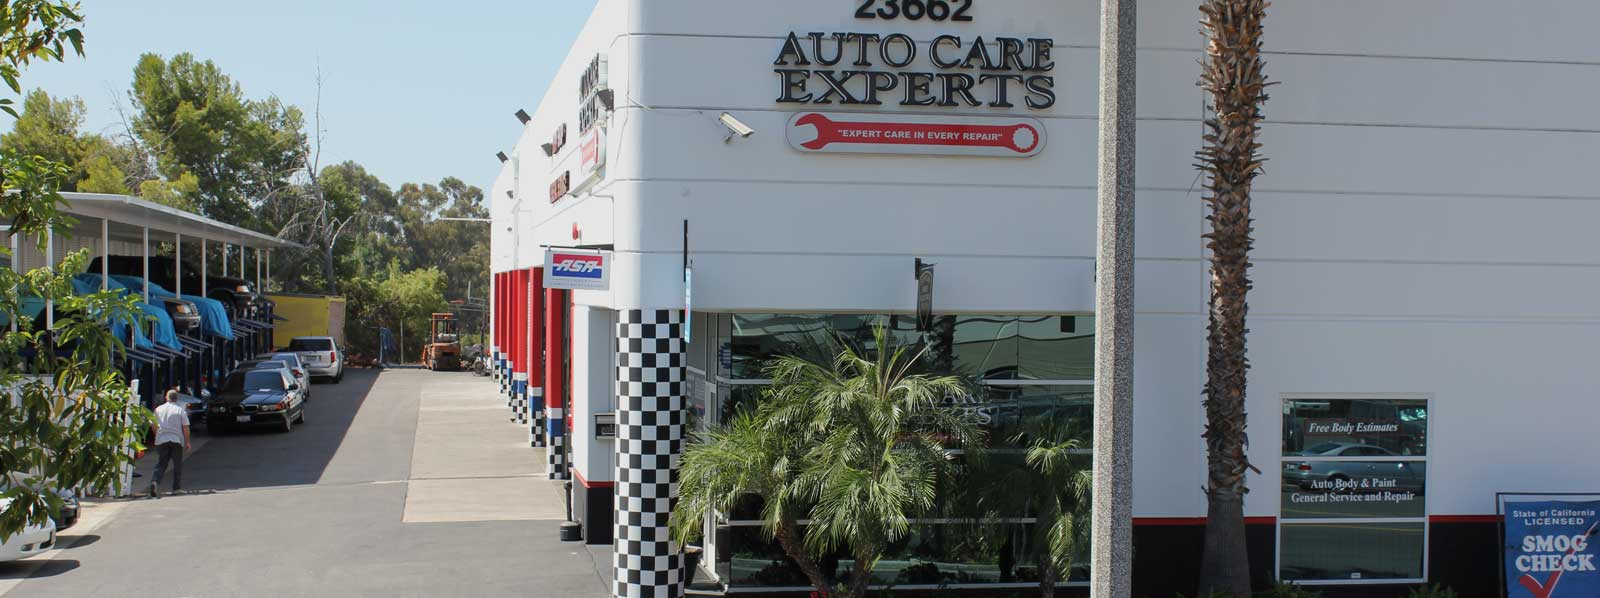 Auto Care Experts - auto repair